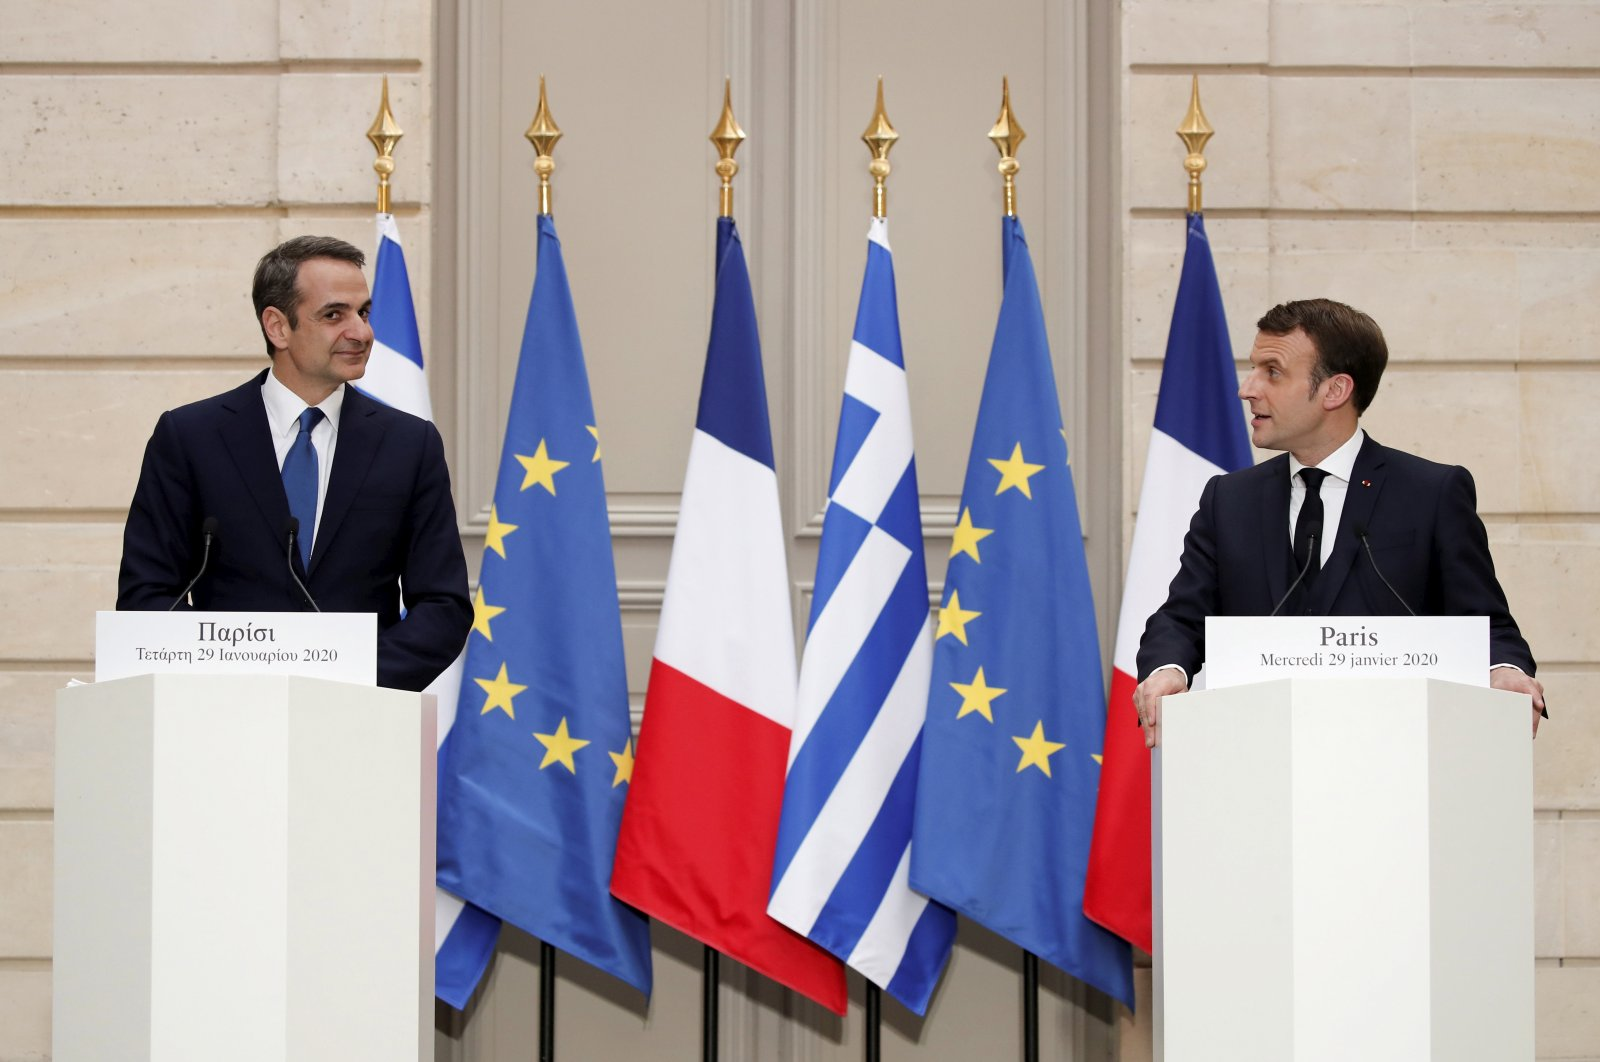 French President Emmanuel Macron (R) and Greek Prime Minister Kyriakos Mitsotakis attend a joint news conference at the Elysee Palace in Paris, France, Jan. 29, 2020. (AP Photo)